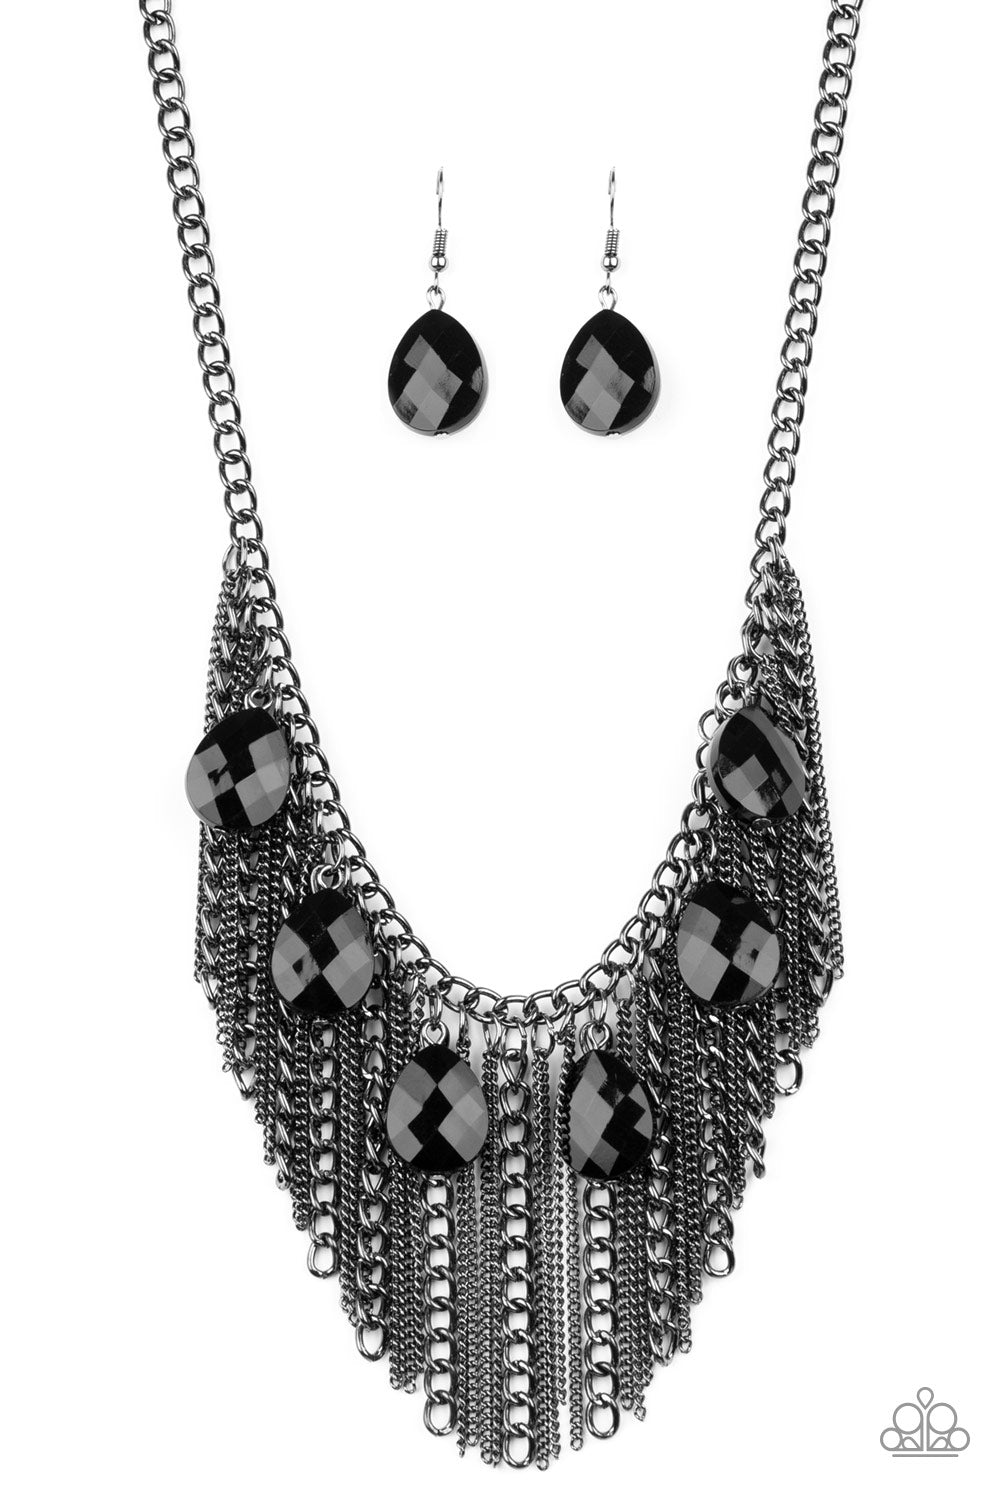 Paparazzi Necklace ~ Vixen Conviction - Black